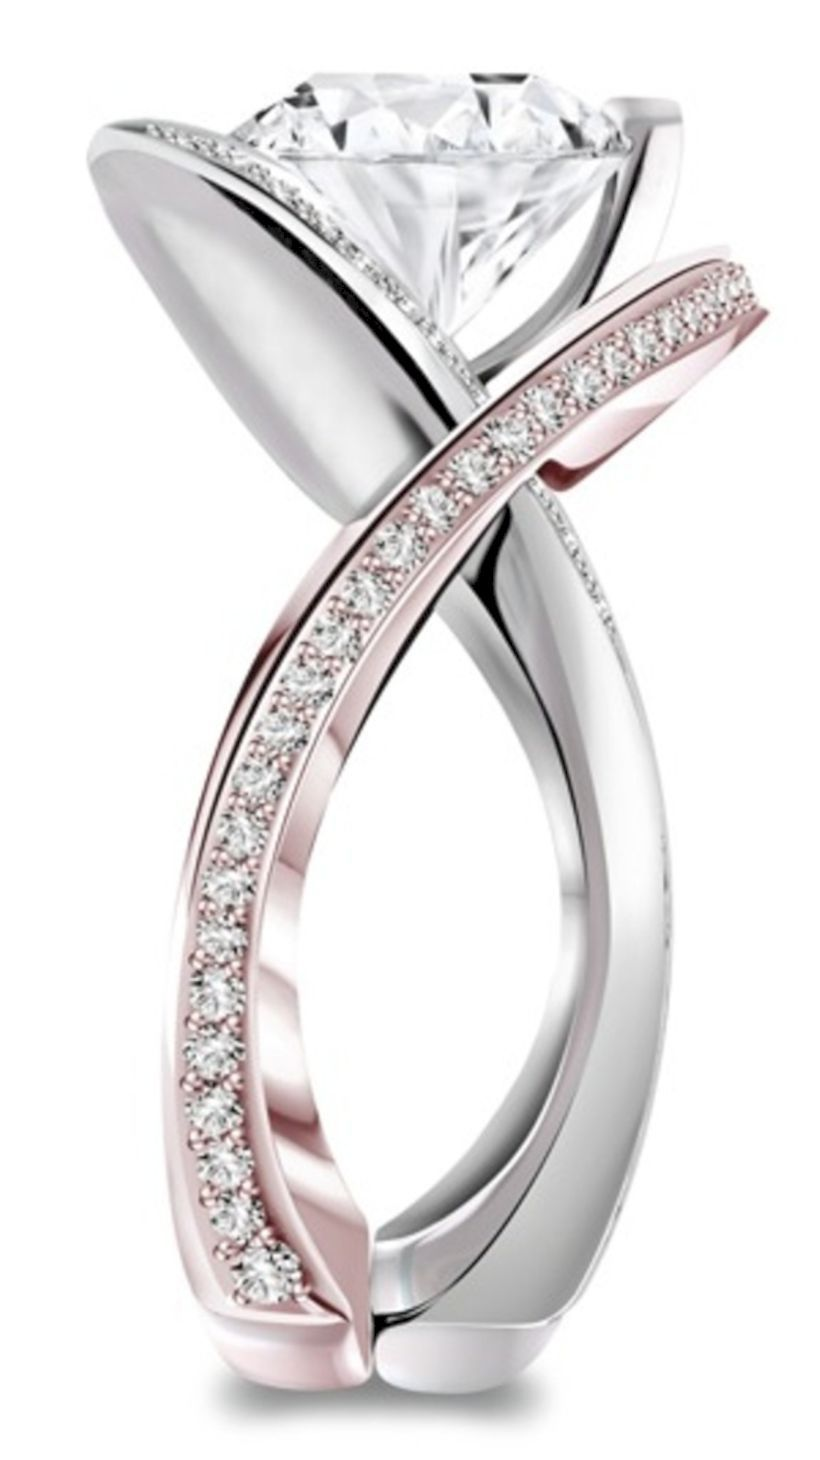 60 Unique and Unusual Wedding Rings Ideas | Pinterest | Budget ...